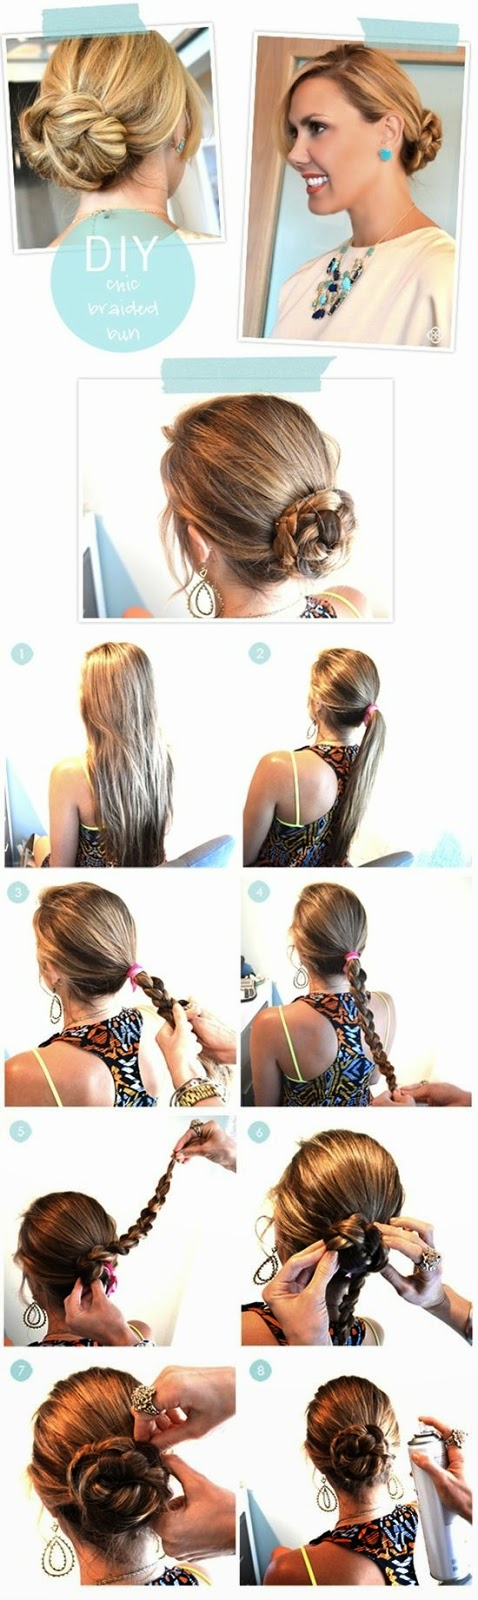 Chic Braided Bun hair tutorial